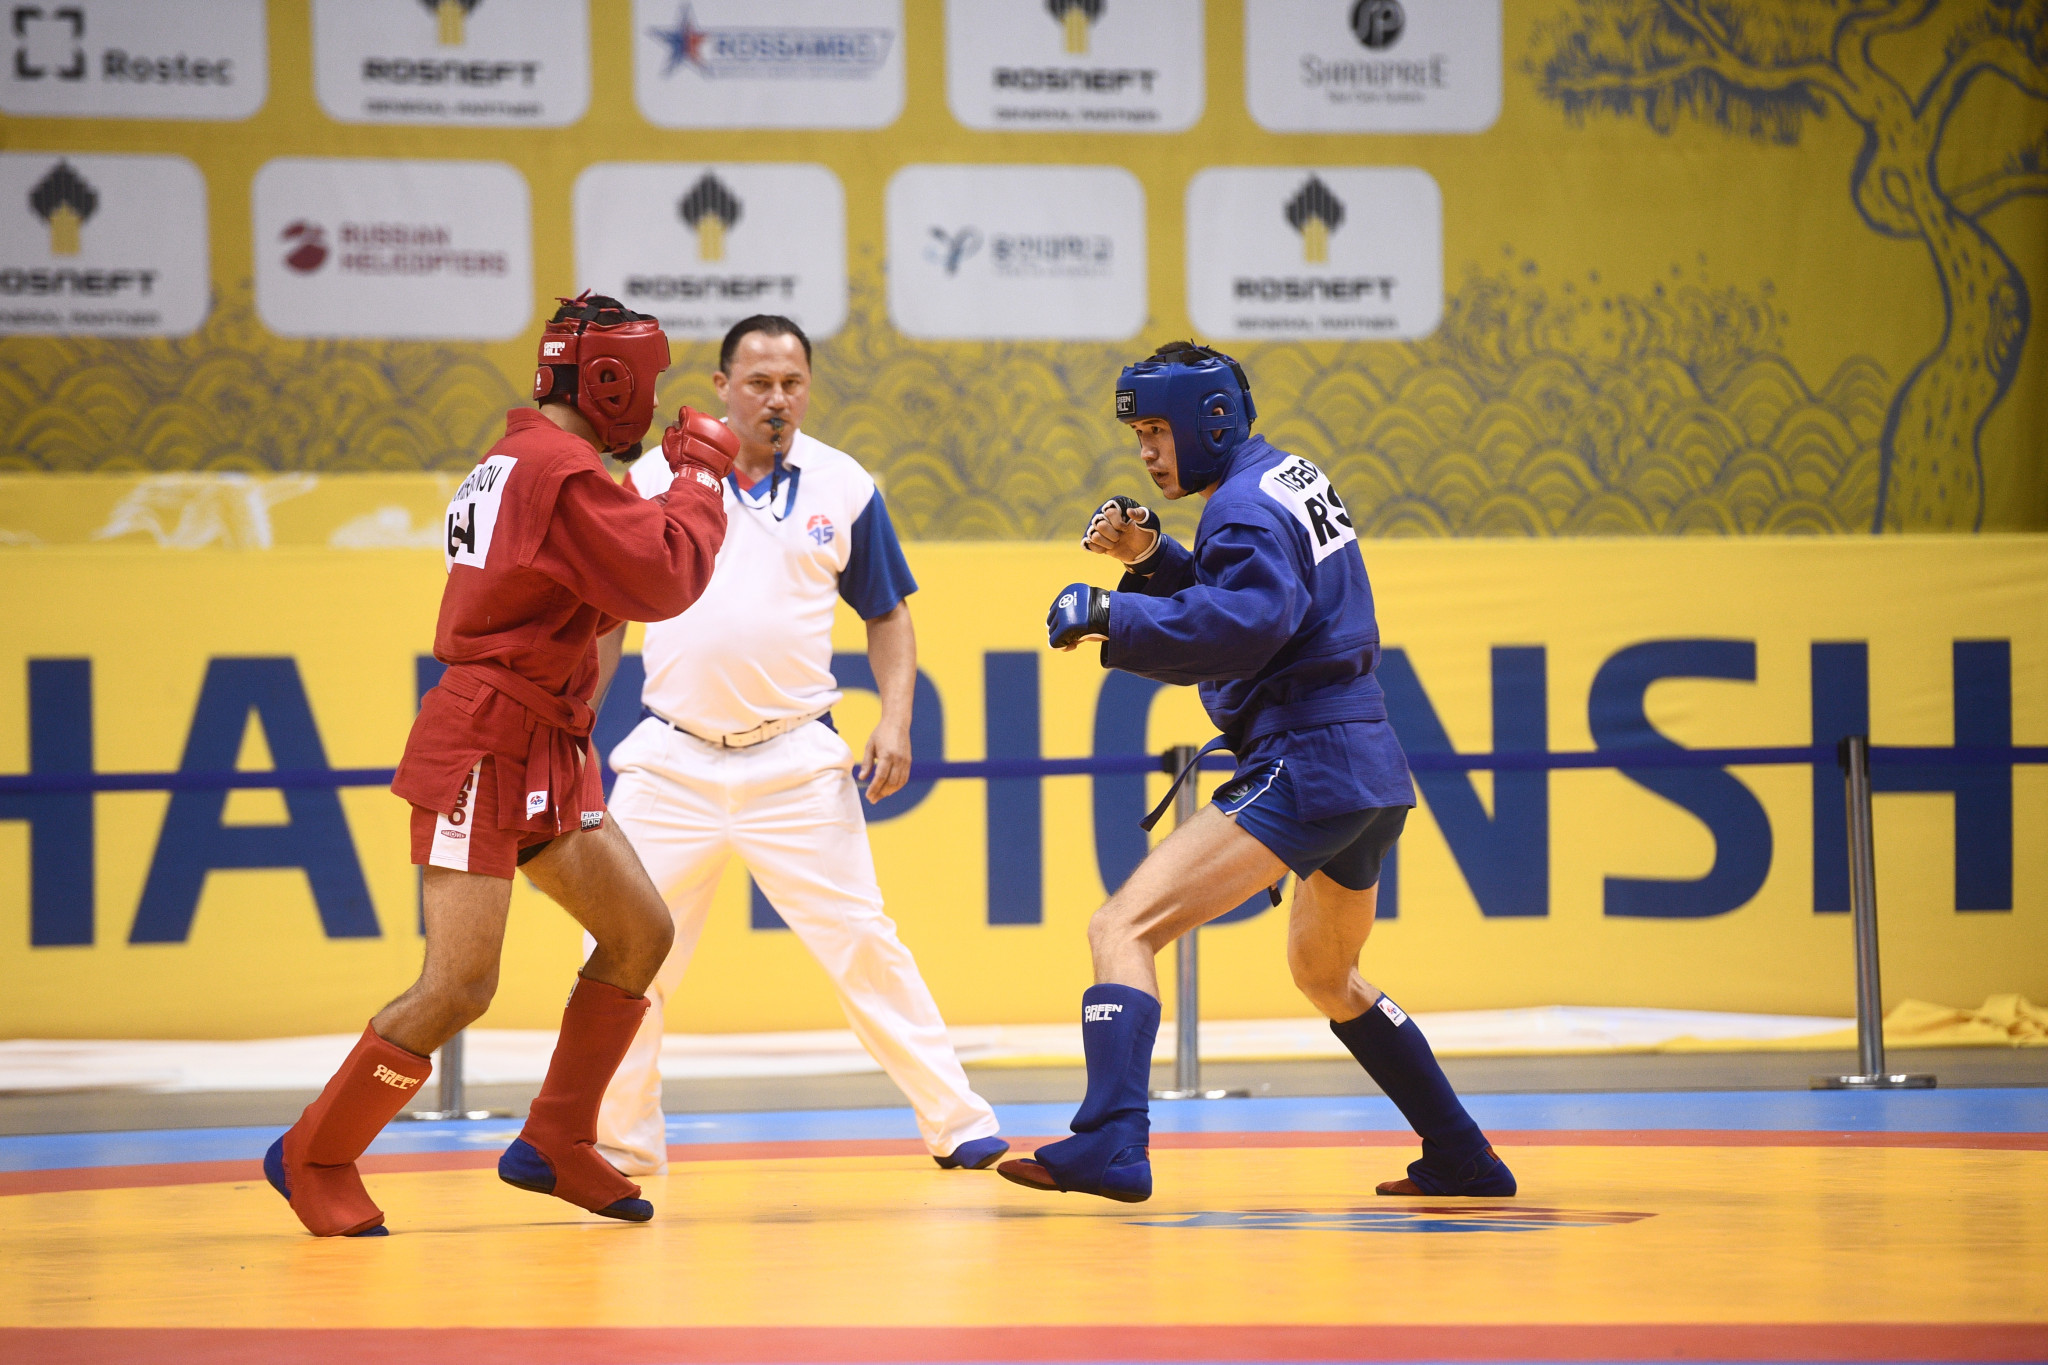 There was plenty of drama as the combat sambo competition drew to a conclusion ©FIAS